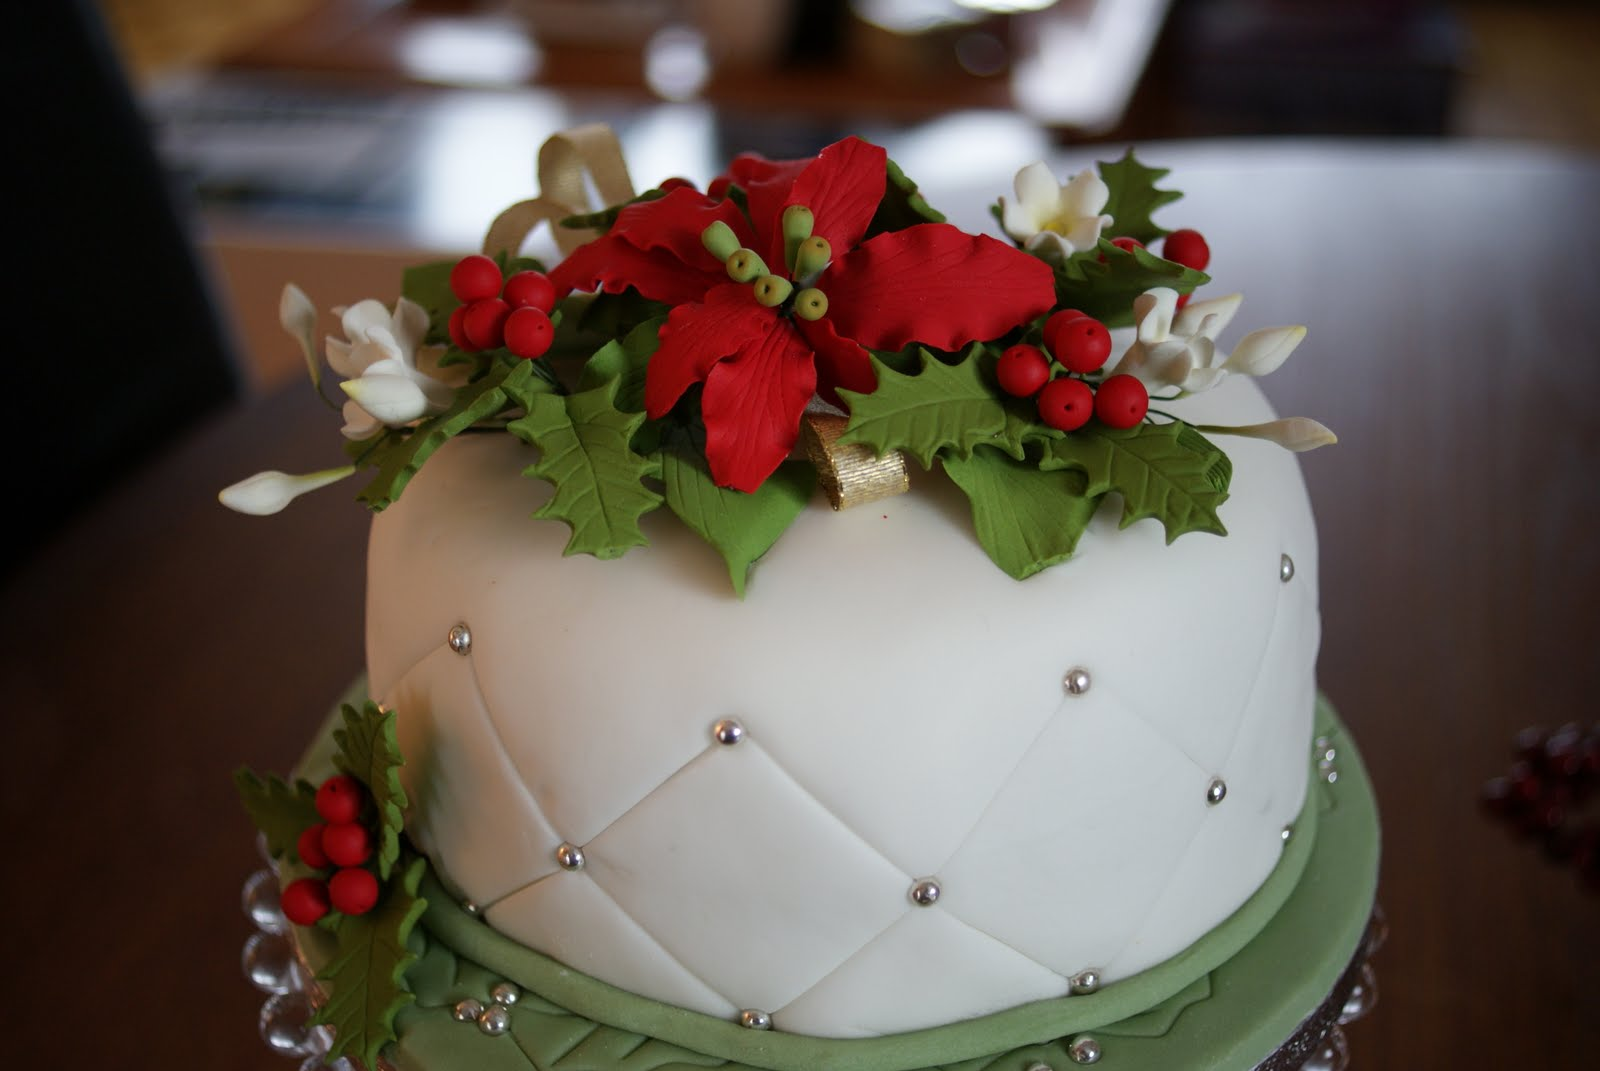 images of christmas cake - photo #17